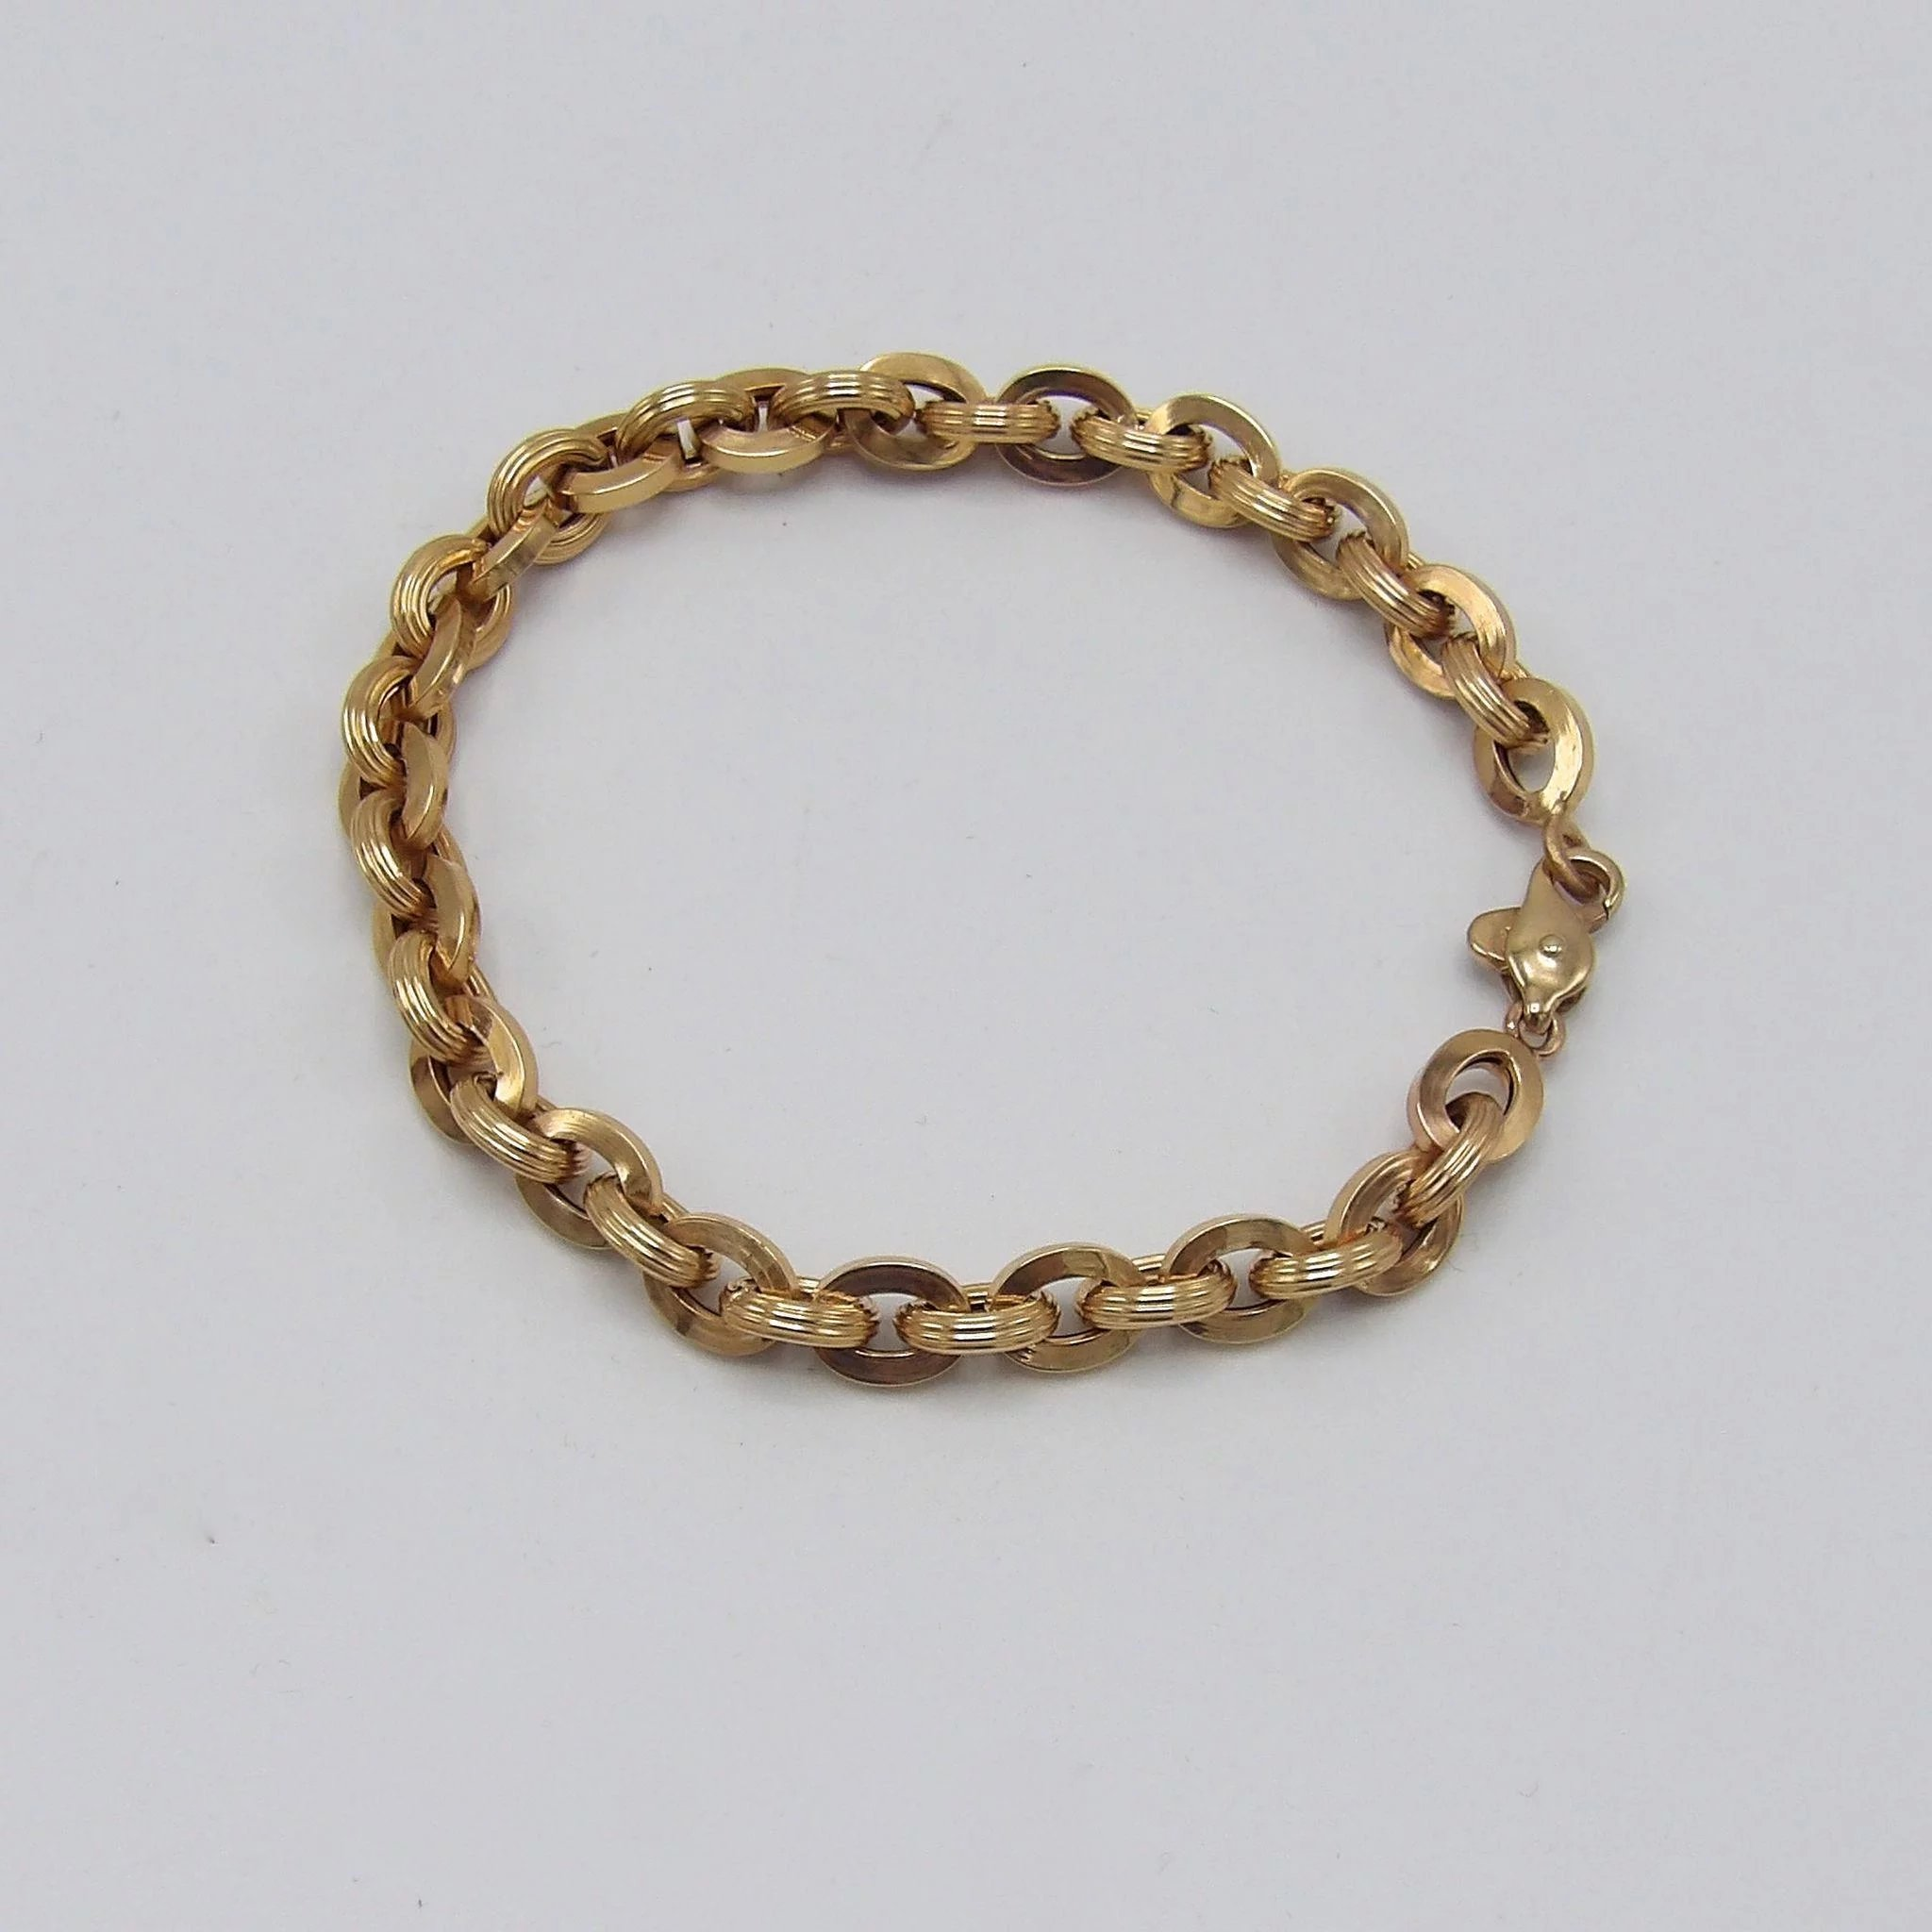 Victorian 14kt Gold Chain Link Bracelet Click To Expand